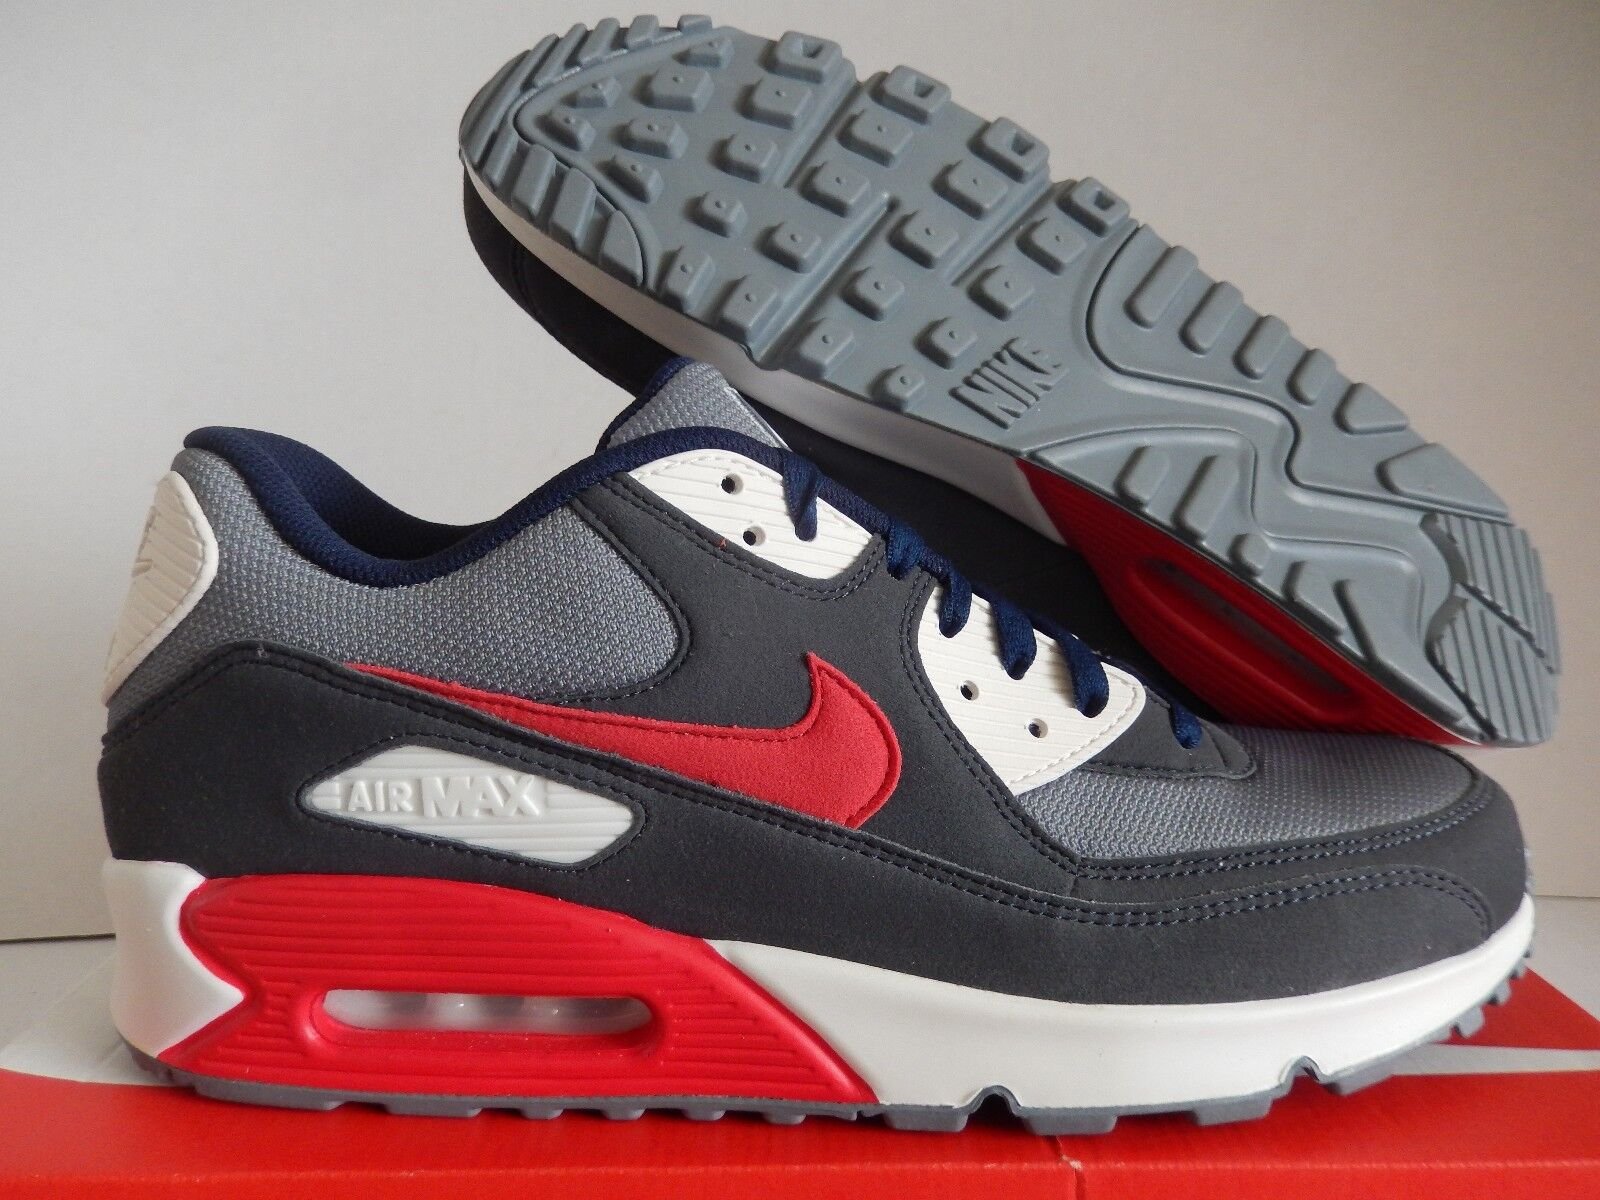 NIKE AIR MAX 90 ID DARK GREY-WHITE-NAVY BLUE-RED Price reduction Cheap and beautiful fashion